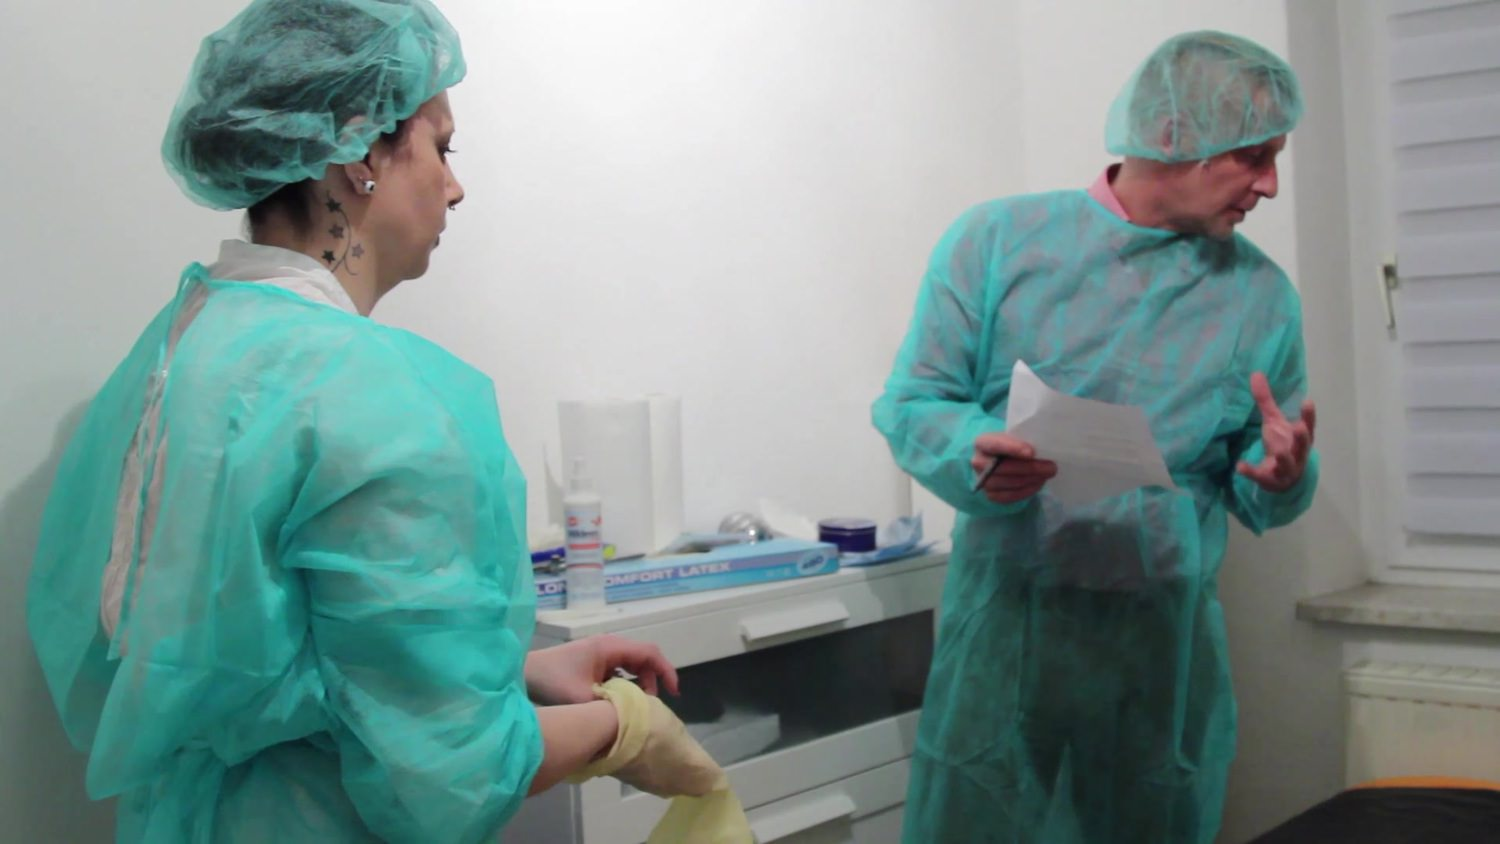 Medical Examination Femdom anal Untersuchung Part2